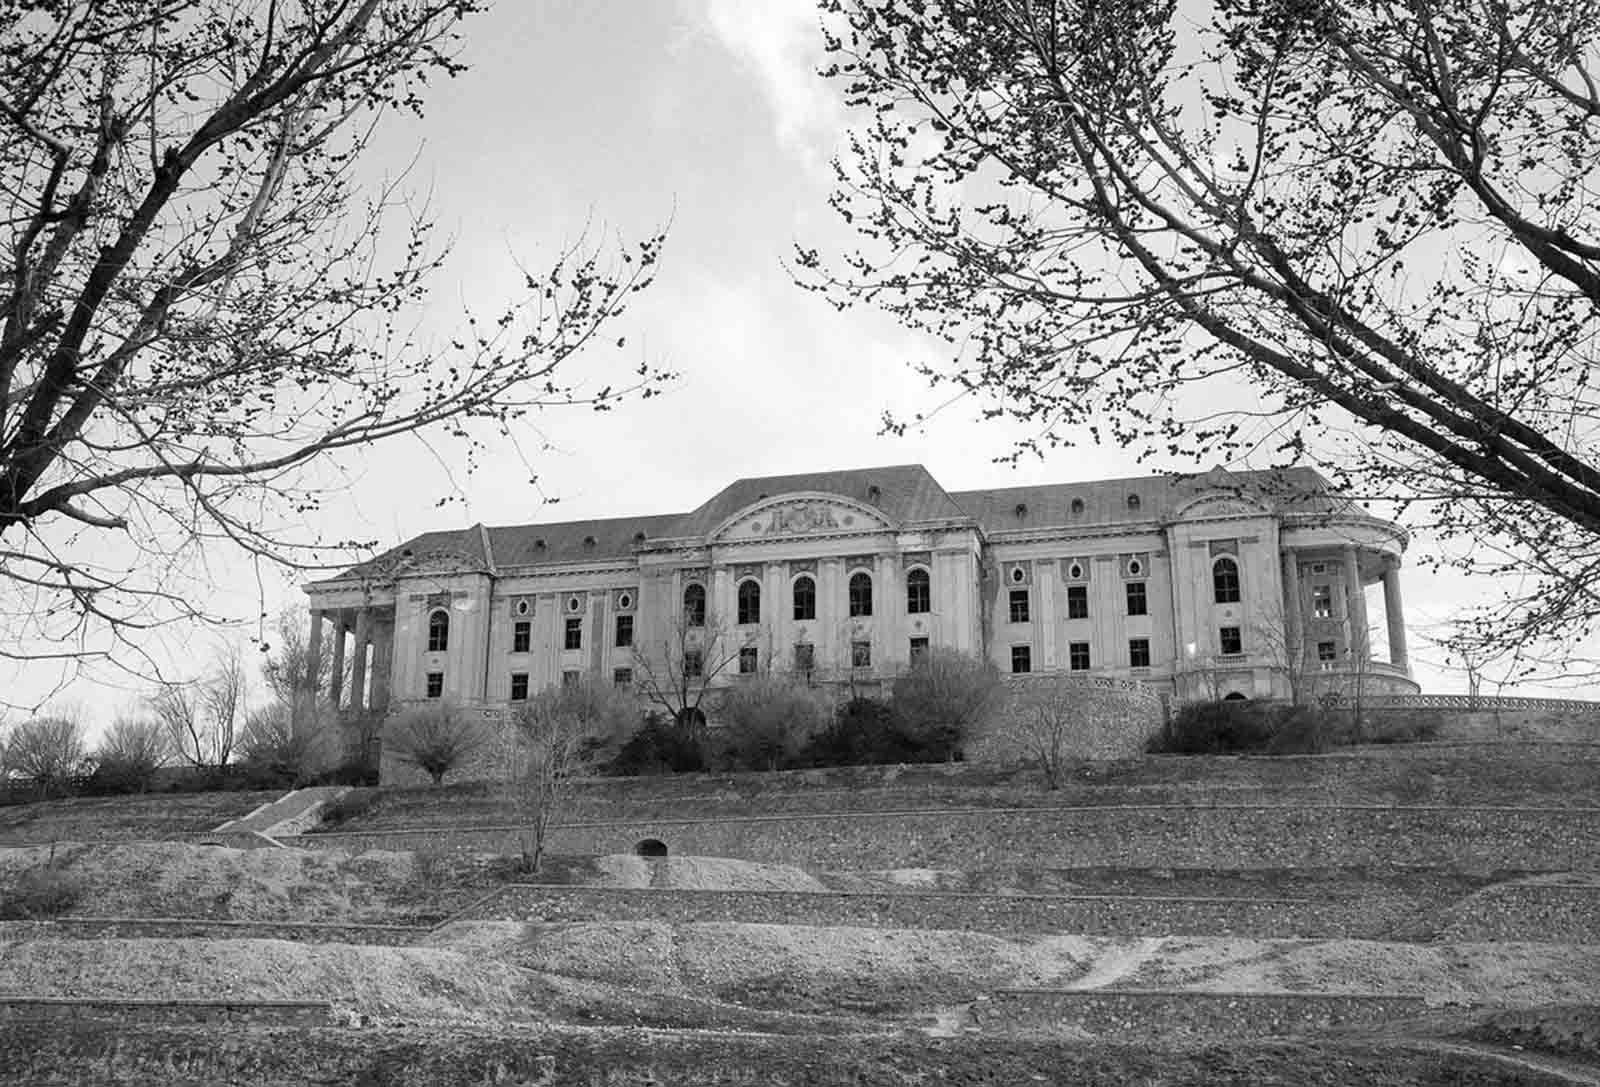 Tajbeg (Queen's) Palace, the Palace of Amanullah Khan in Kabul, photographed on October 8, 1949. Amanullah Khan, King of Afghanistan in the early 20th century, attempted to modernize his country and make many reforms to eliminate many age-old customs and habits. His ambitious plans and ideas were based on what he had seen during a visit to Europe.